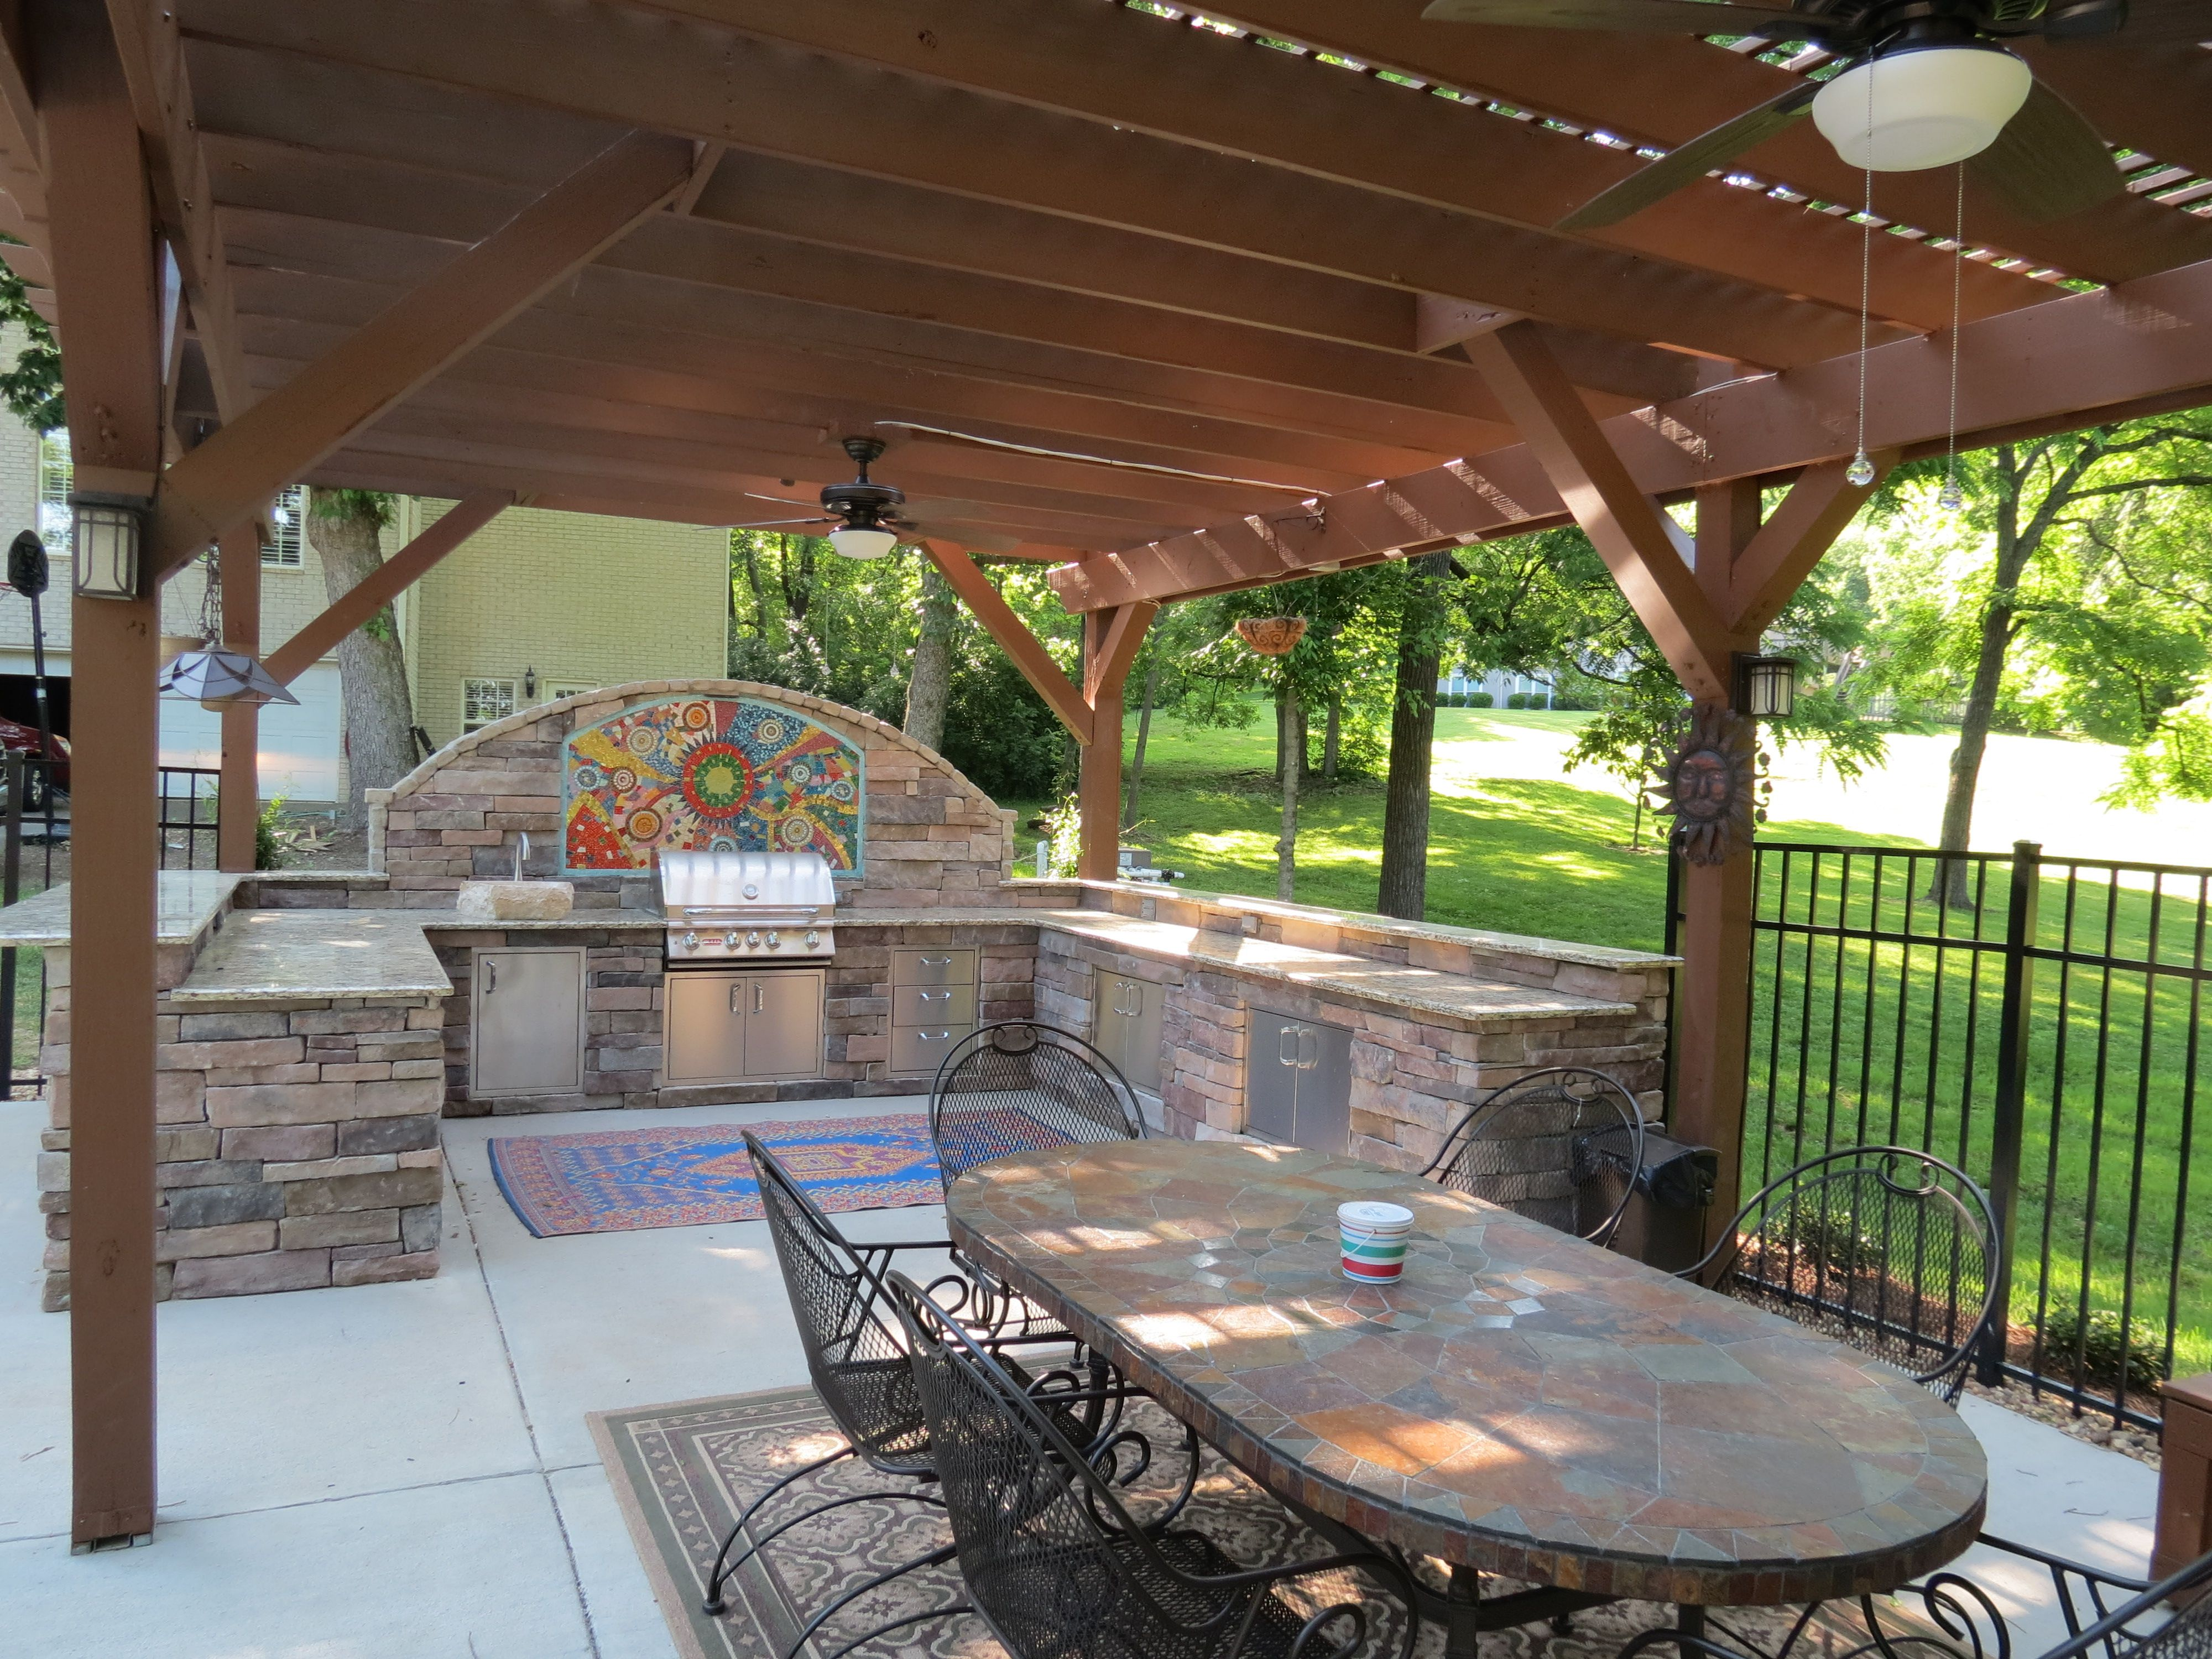 Outdoor kitchen area with grill, sink, refrigerator ...